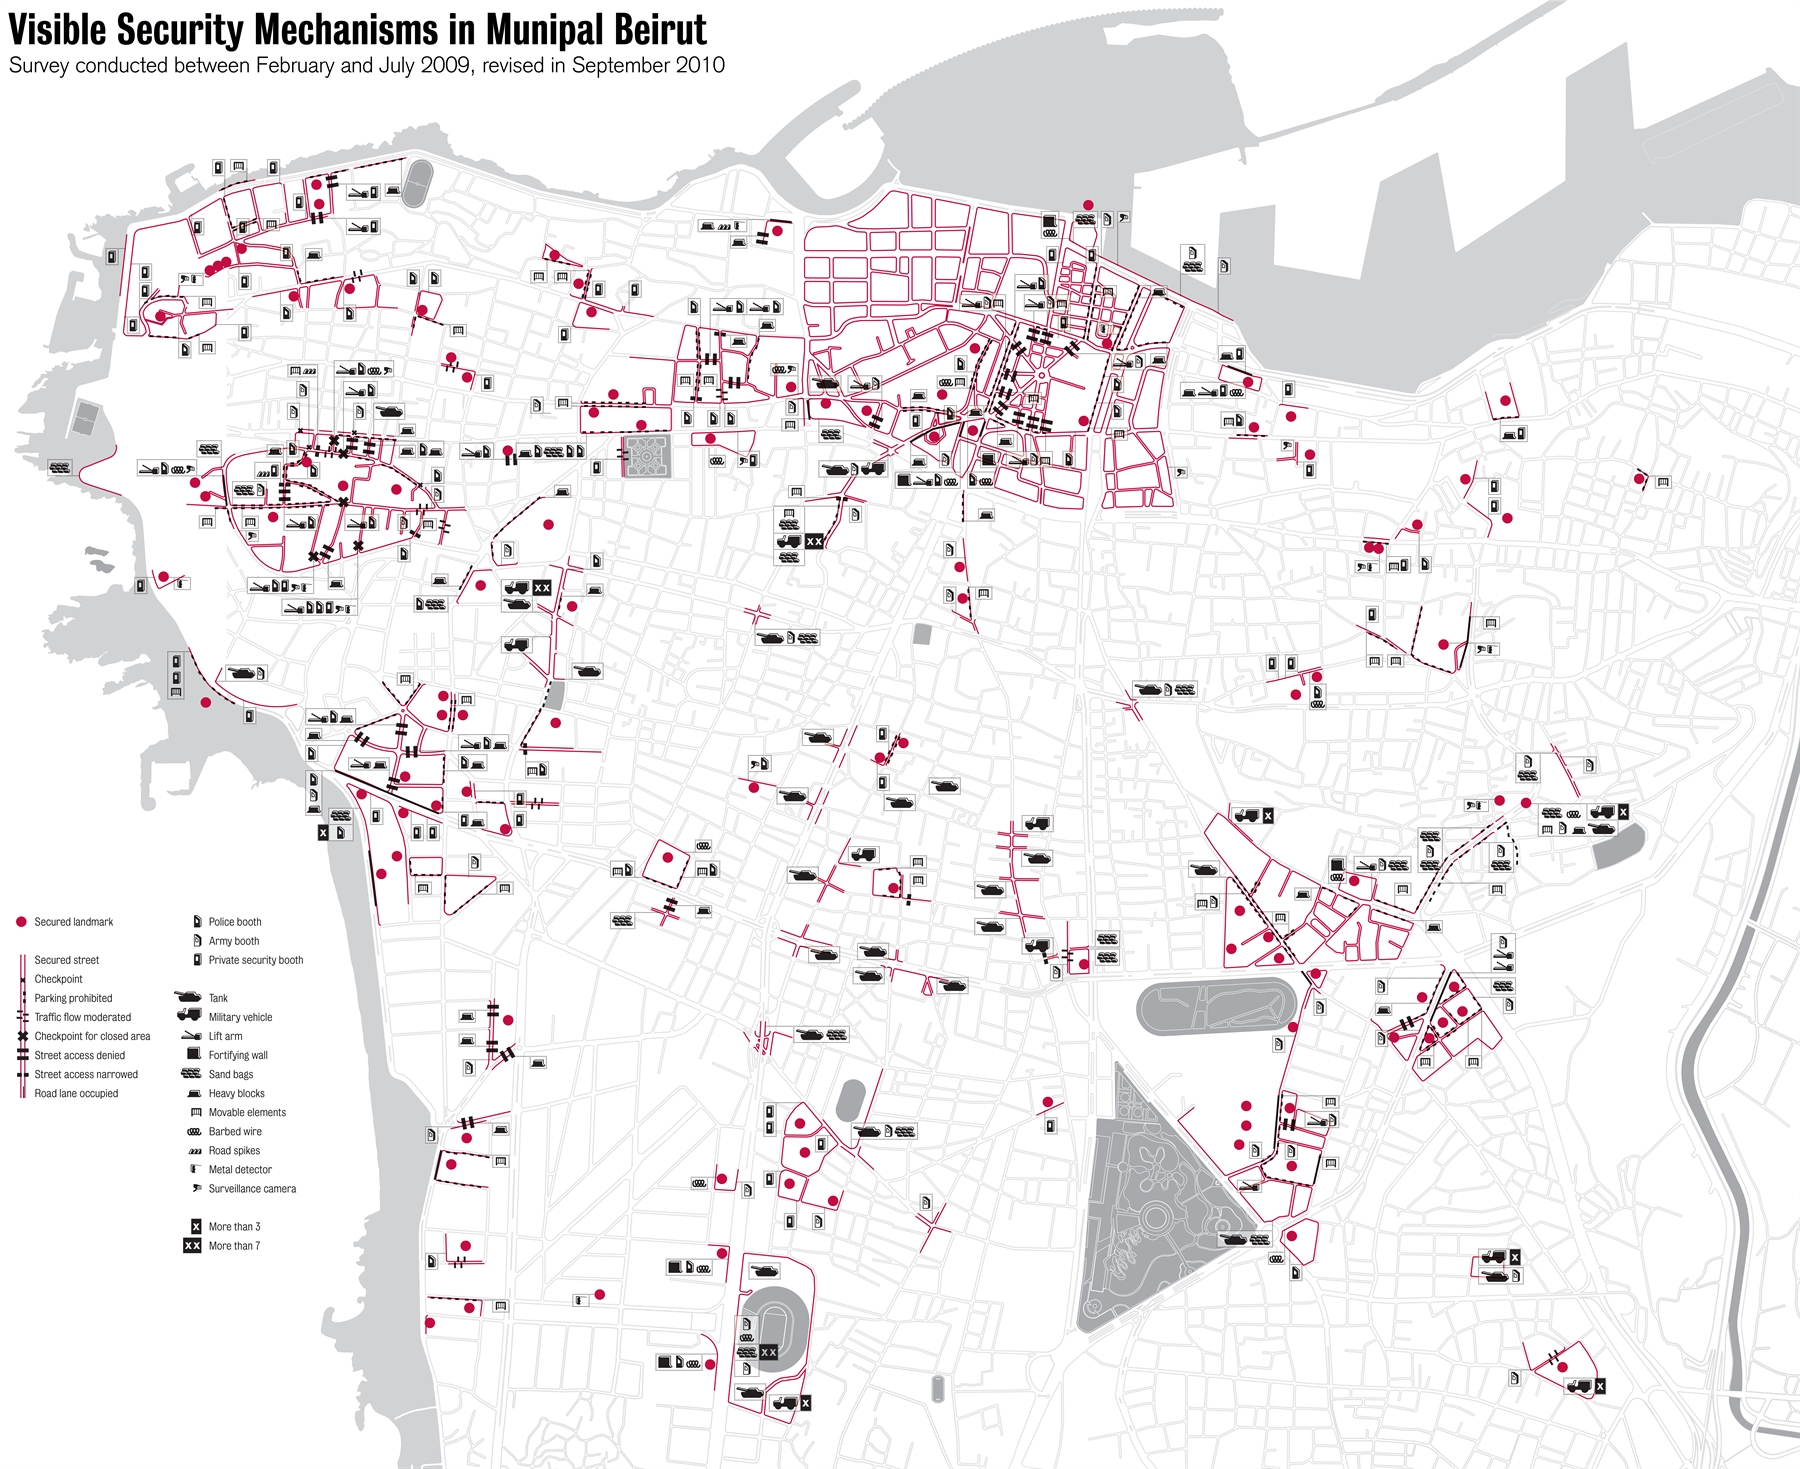 Map showing the visible security mechanisms in Municipal Beirut, published several times between 2010 and 2015.